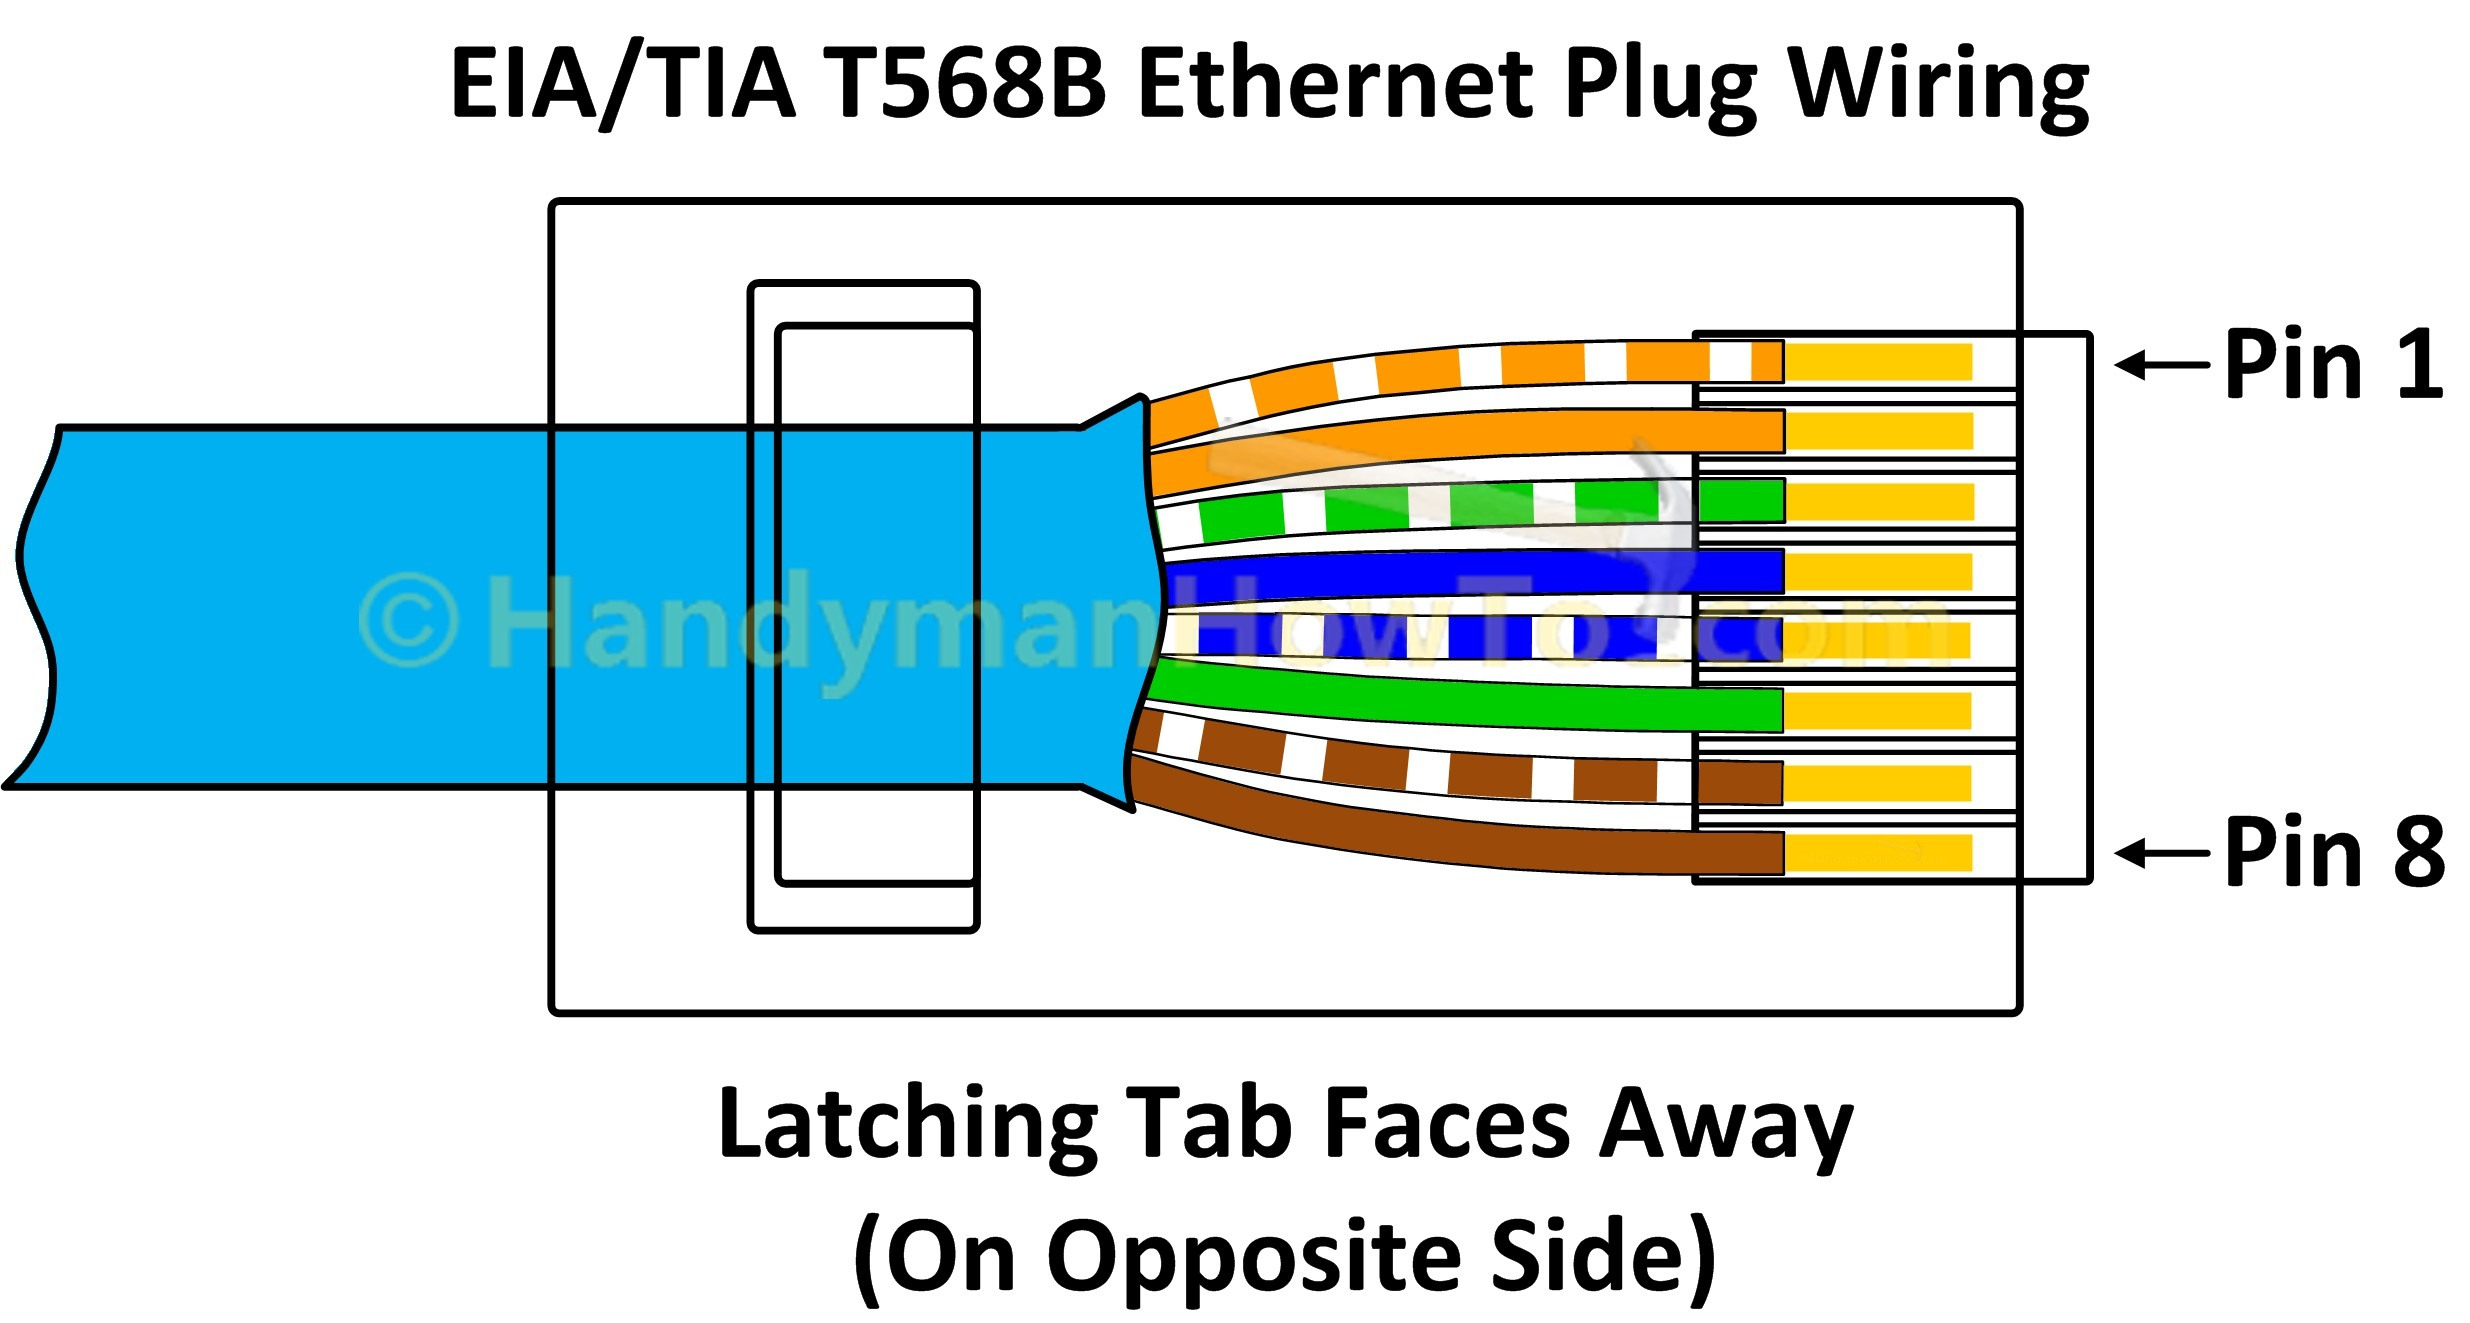 cat 5 wiring diagram pdf Download-system besides cat 5 cable wiring diagram as well 568b ether wiring rh hannalupi co 8-k